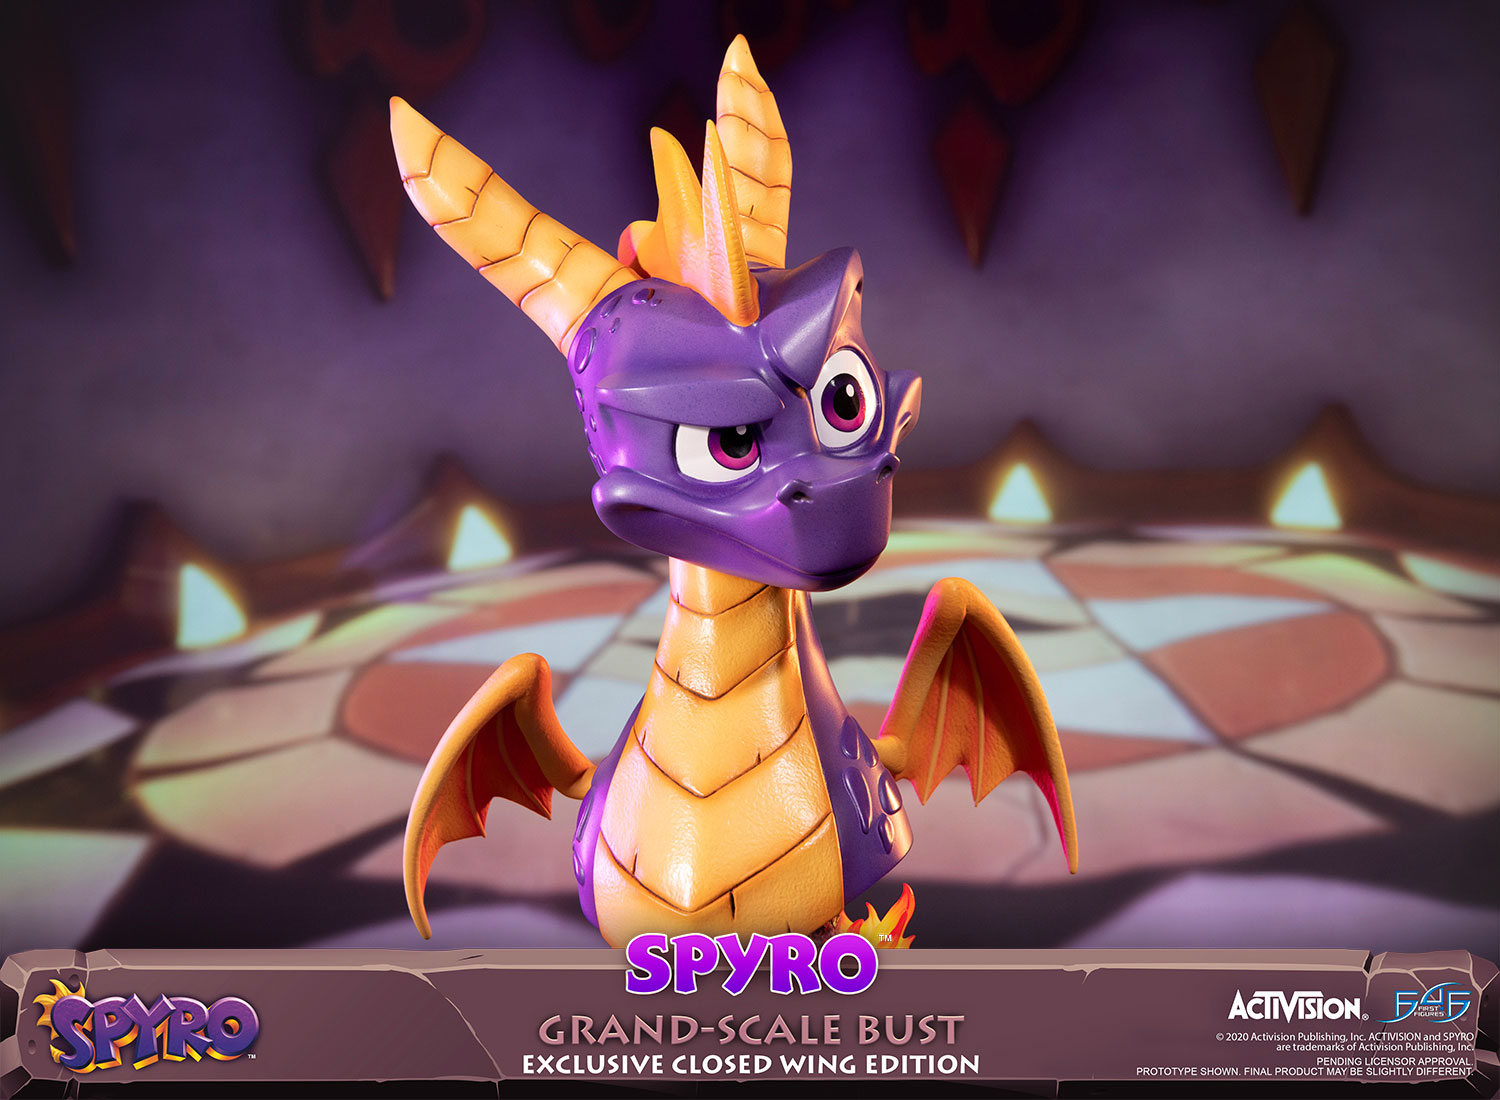 Spyro™ Grand-Scale Bust (Exclusive Closed Wing Edition)